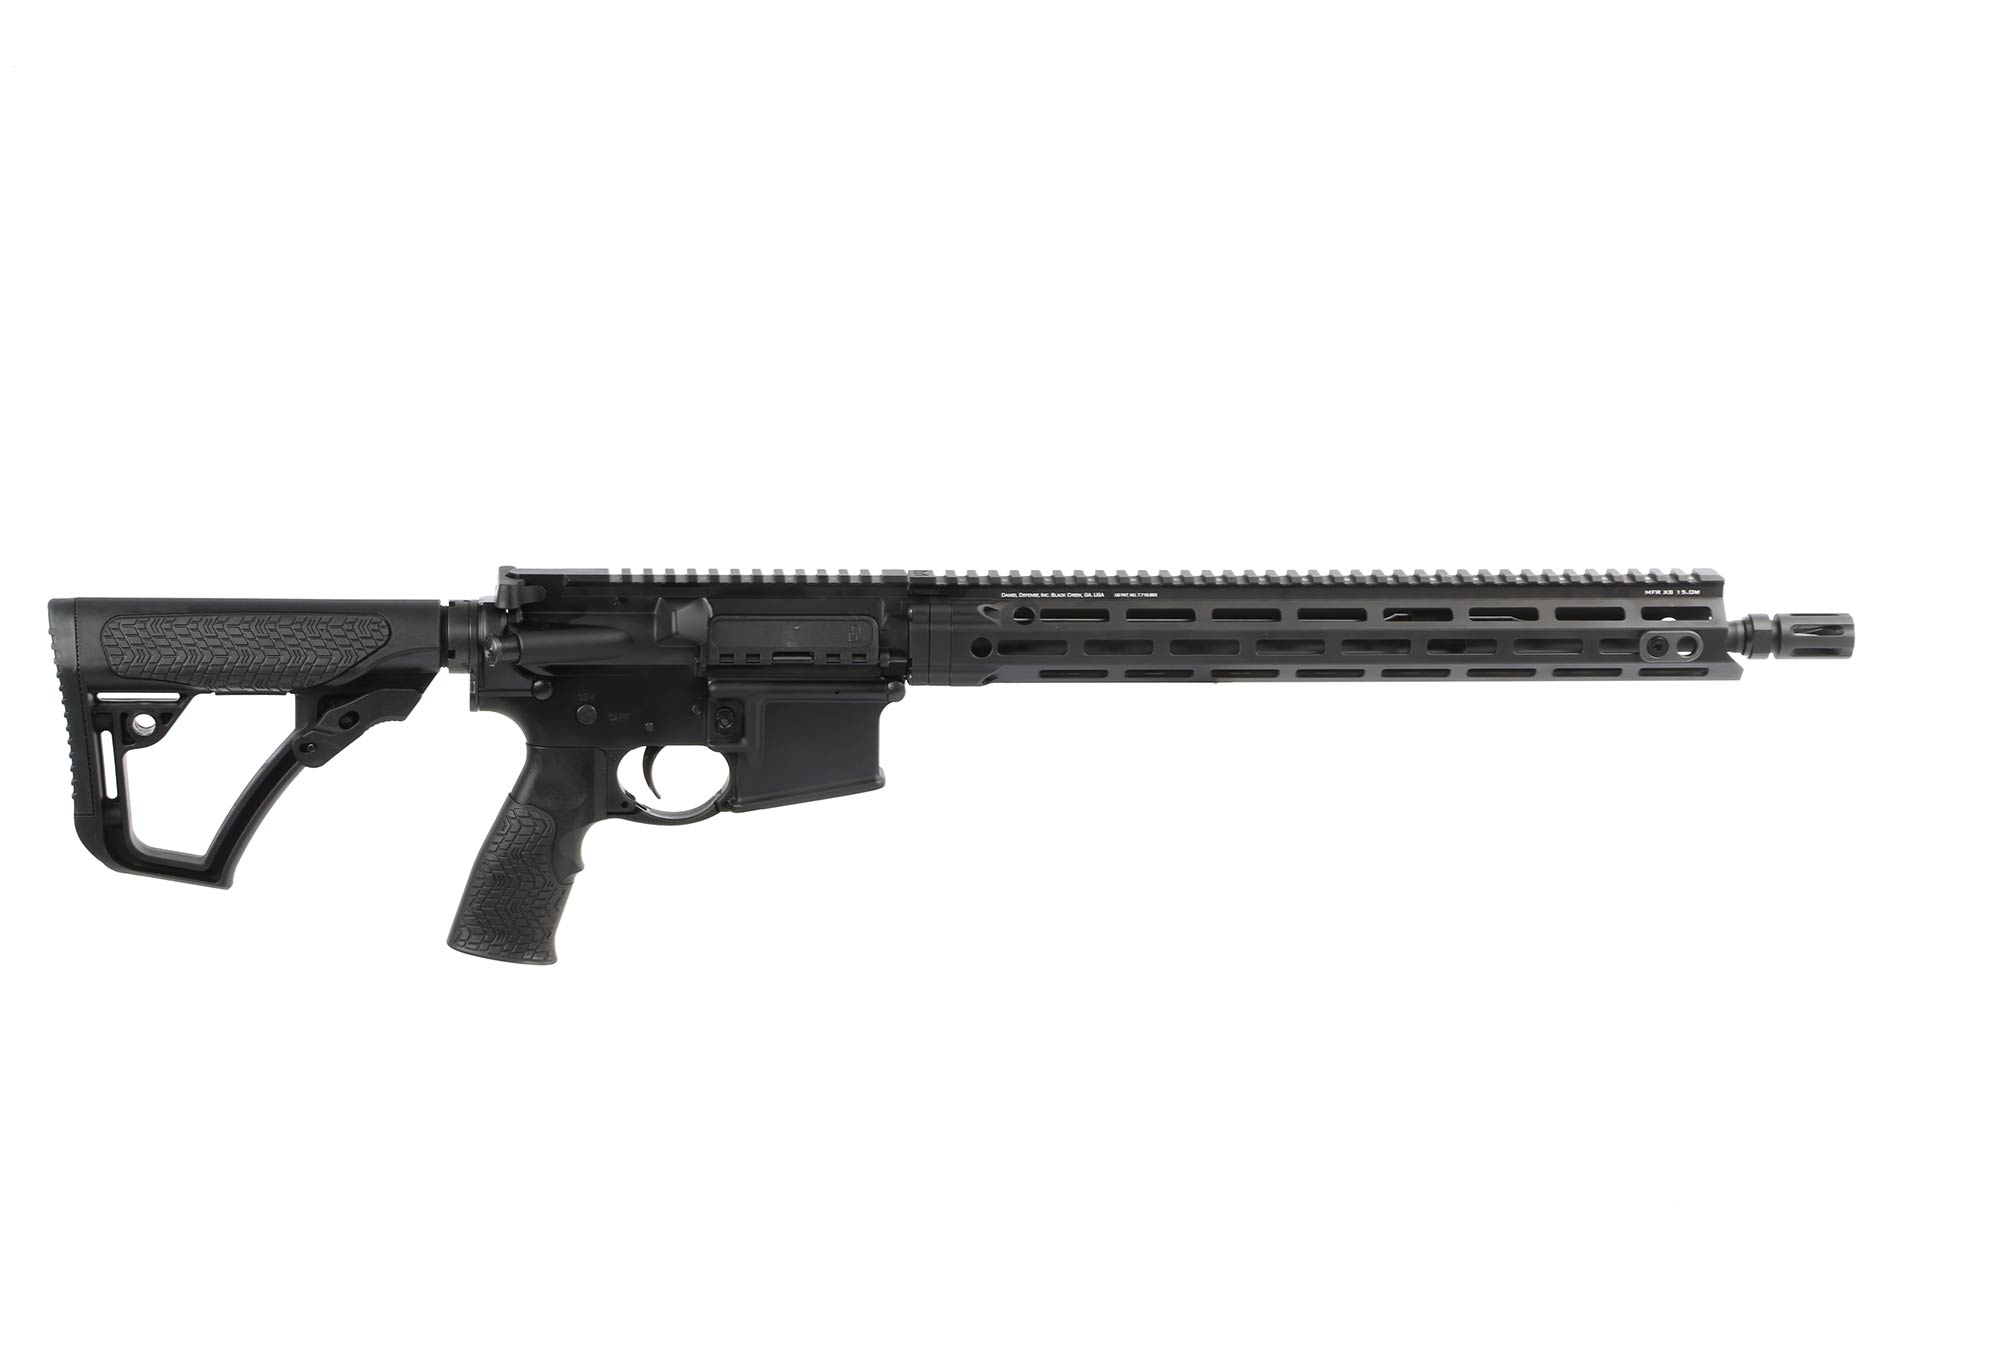 The Daniel Defense DDM4v7 Lightweight rifle features a 16 inch barrel